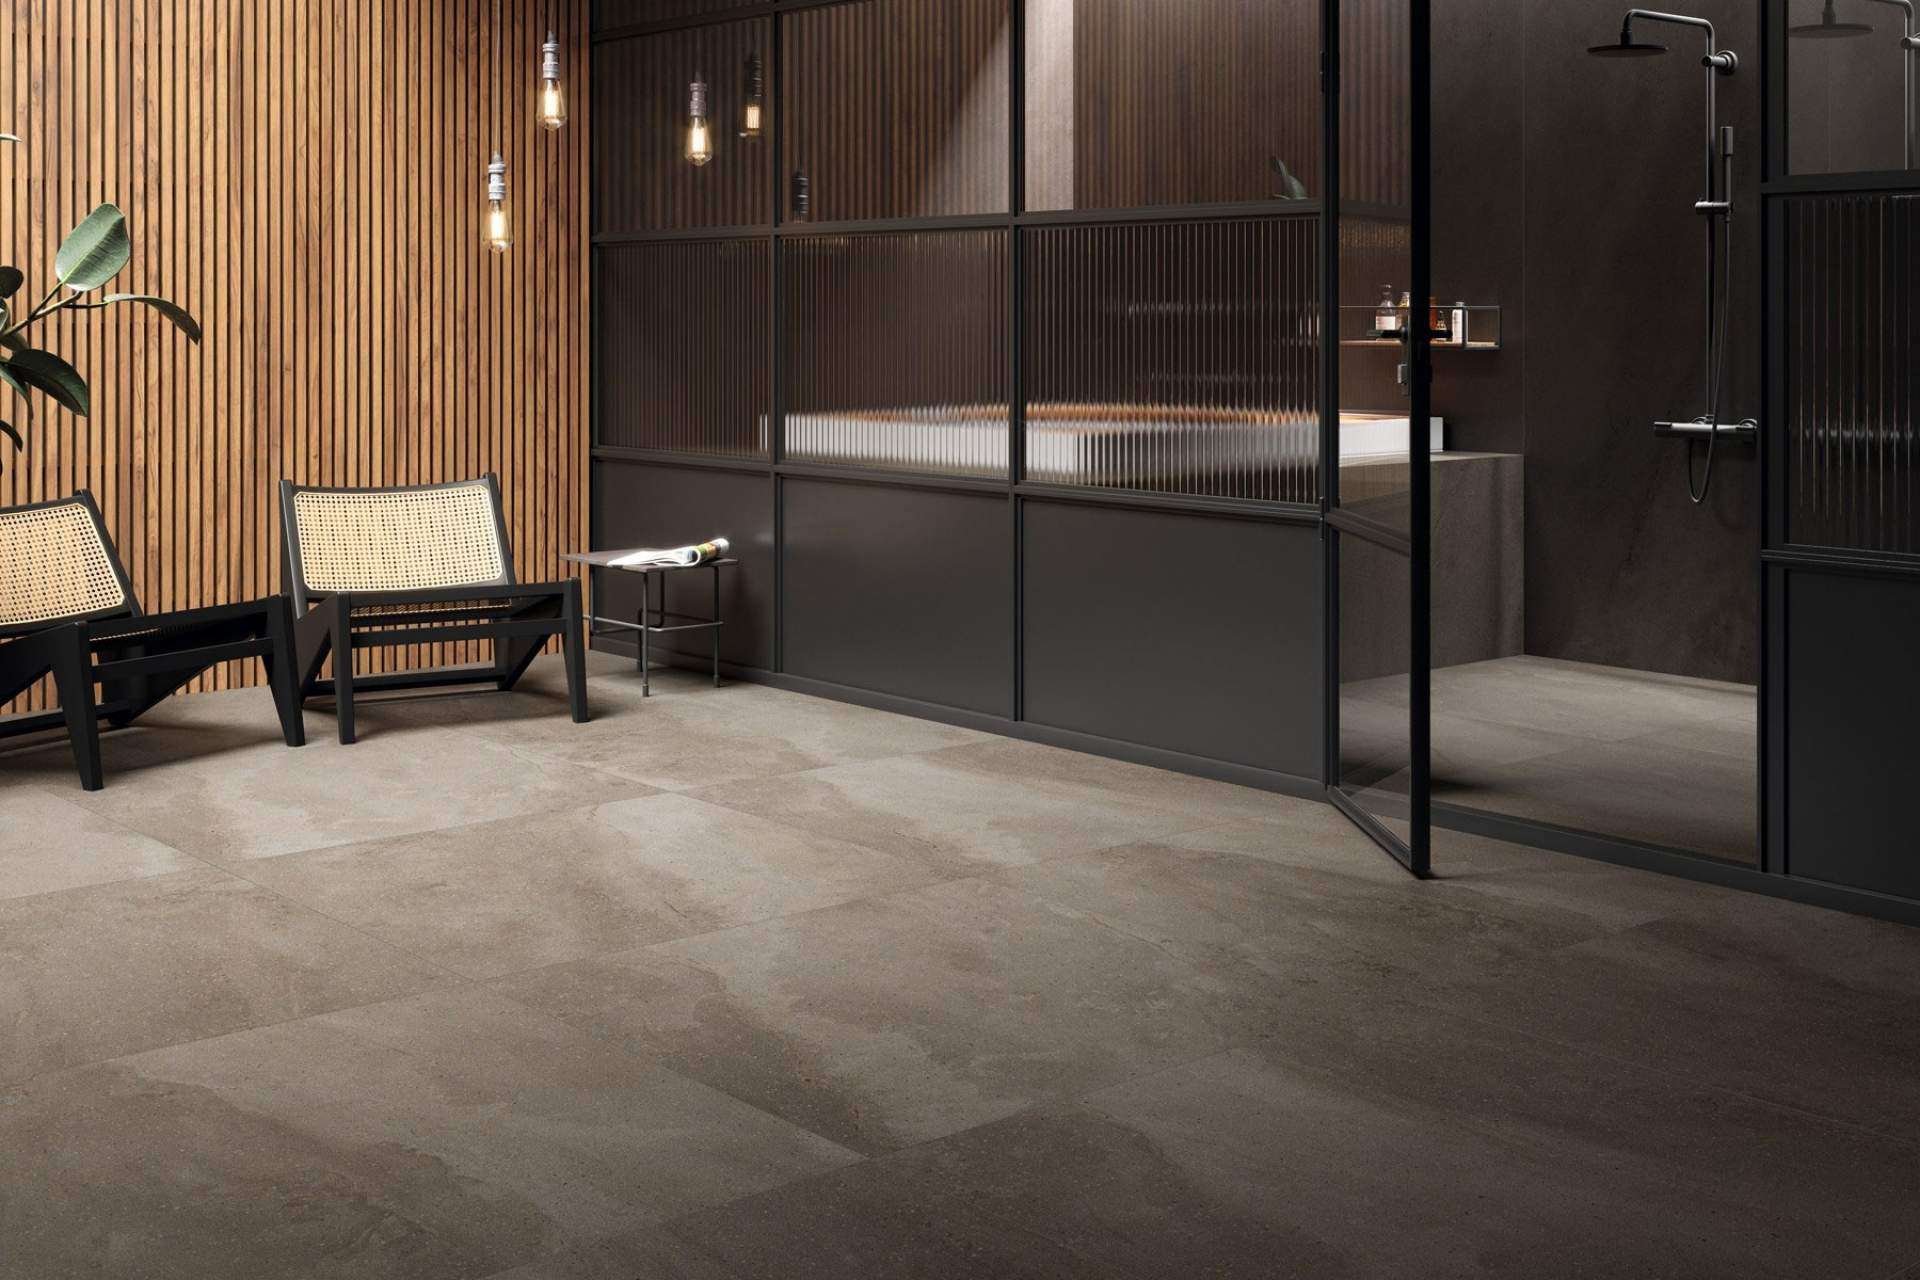 Fusion bathroom setting using grey natural tile